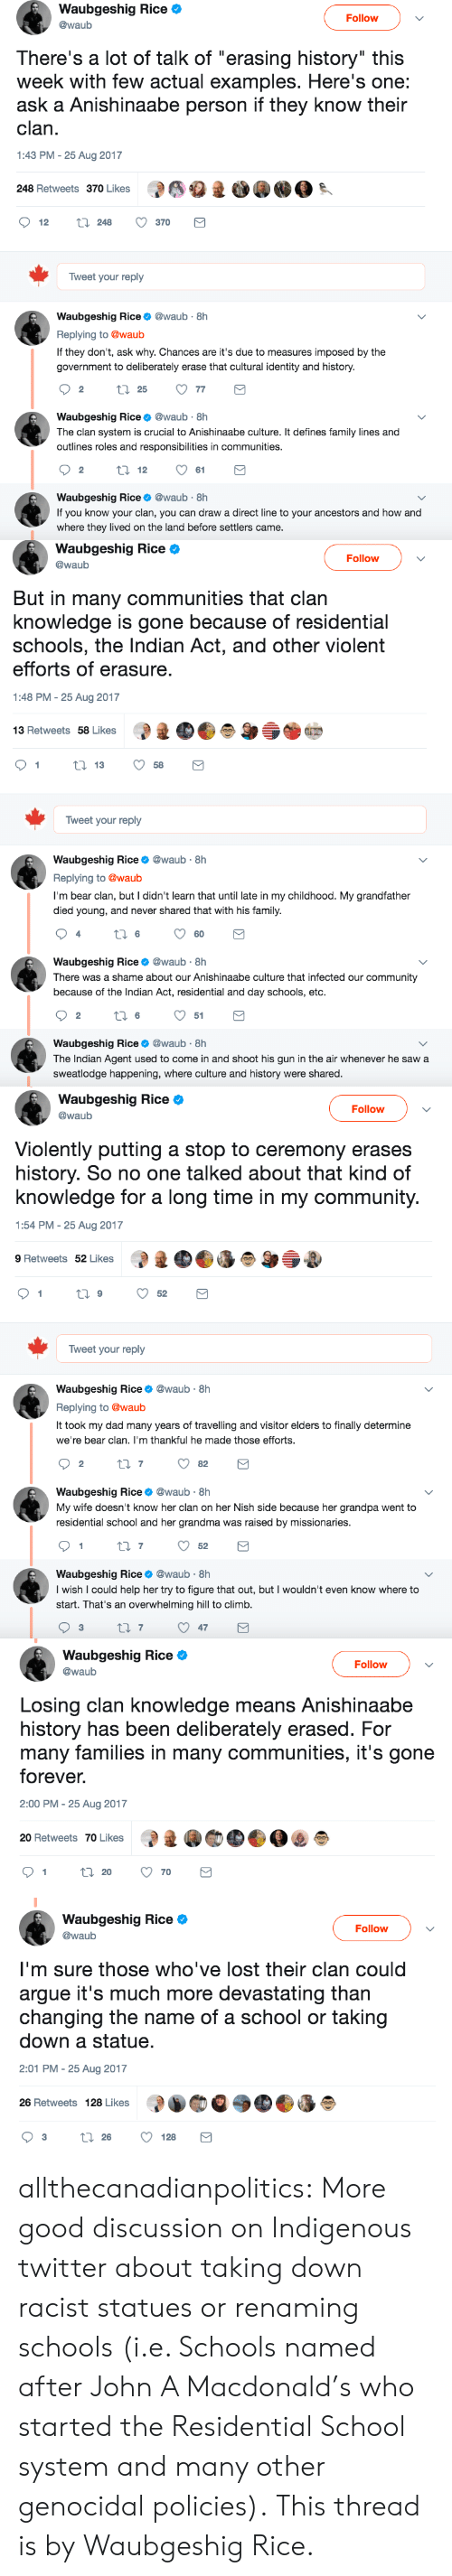 """Arguing, Community, and Dad: Waubgeshig Rice  @waub  Follow  There's a lot of talk of """"erasing history"""" this  week with few actual examples. Here's one:  ask a Anishinaabe person if they know their  clan  1:43 PM - 25 Aug 2017  248 Retweets 370 Likes  1  12 t 248 370  Tweet your reply  Waubgeshig Rice@waub 8h  Replying to @waub  If they don't, ask why. Chances are it's due to measures imposed by the  government to deliberately erase that cultural identity and history.  Waubgeshig Rice@waub 8h  The clan system is crucial to Anishinaabe culture. It defines family lines and  outlines roles and responsibilities in communities  Waubgeshig Rice@waub 8h  If you know your clan, you can draw a direct line to your ancestors and how and  where they lived on the land before settlers came   Waubgeshig Rice Ф  @waub  Follow  But in many communities that clan  knowledge is gone because of residential  schools, the Indian Act, and other violent  efforts of erasure  1:48 PM - 25 Aug 2017  13 Retweets 58 Likes  1358  Tweet your reply  Waubgeshig Rice@waub 8h  Replying to @waub  I'm bear clan, but I didn't learn that until late in my childhood. My grandfather  died young, and never shared that with his family  60  Waubgeshig Rice@waub 8h  There was a shame about our Anishinaabe culture that infected our community  because of the Indian Act, residential and day schools, etc.  2  6  51  Waubgeshig Rice@waub 8h  The Indian Agent used to come in and shoot his gun in the air whenever he saw a  sweatlodge happening, where culture and history were shared   Waubgeshig Rice Ф  @waub  Follow  Violently putting a stop to ceremony erases  history. So no one talked about that kind of  knowledge for a long time in my community  1:54 PM - 25 Aug 2017  9 Retweets 52 Likes  Tweet your reply  Waubgeshig Rice@waub 8h  Replying to @waub  It took my dad many years of travelling and visitor elders to finally determine  we're bear clan. I'm thankful he made those efforts  2  Waubgeshig Rice@waub 8h  My wife"""